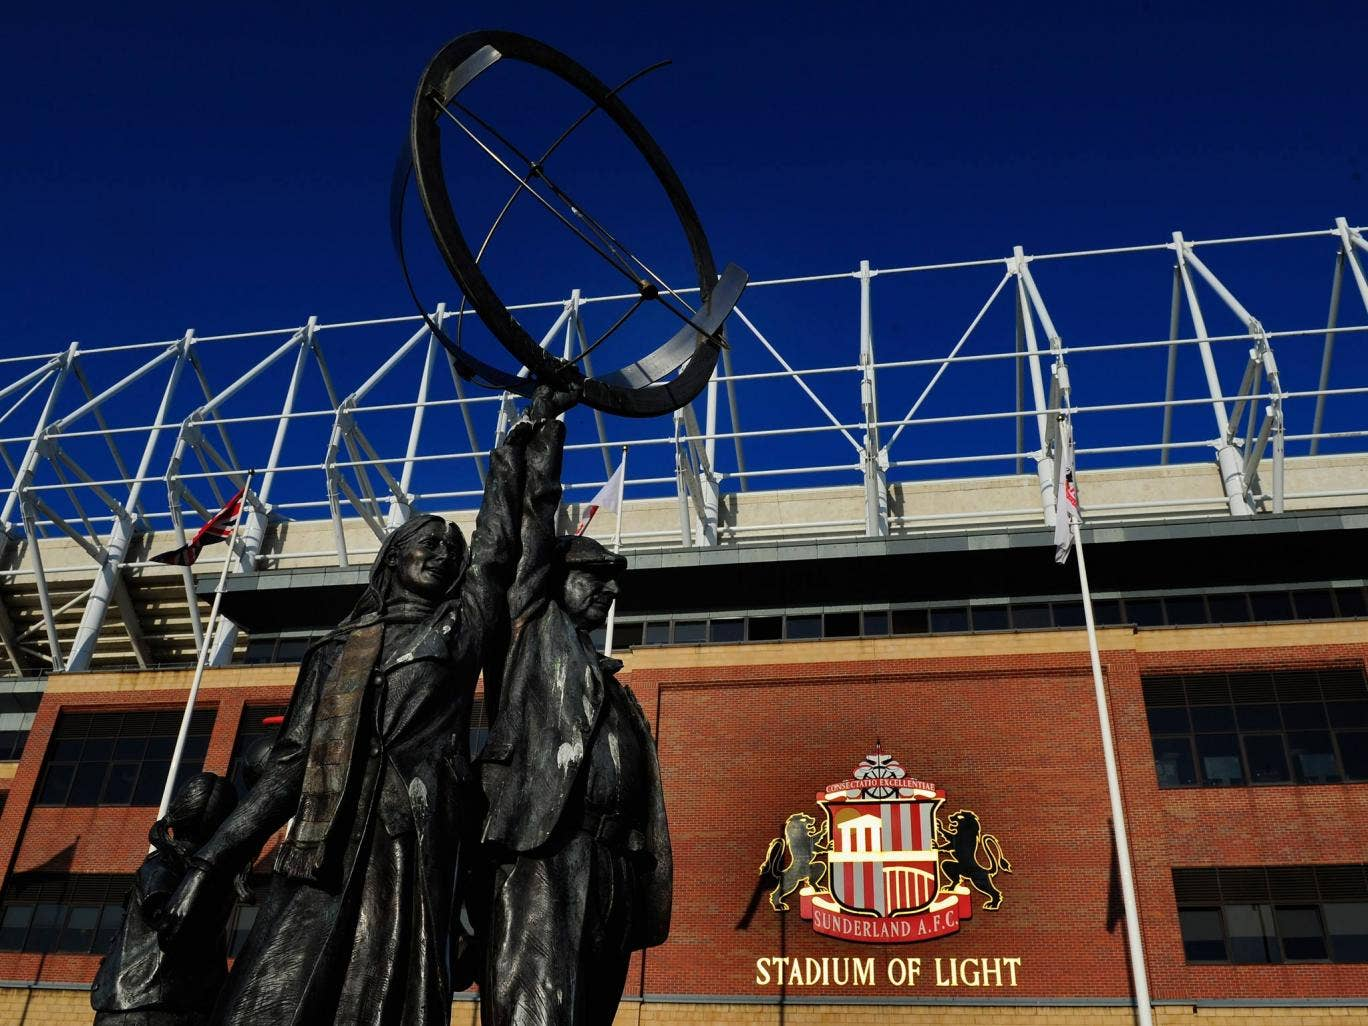 A view of the Stadium of Light